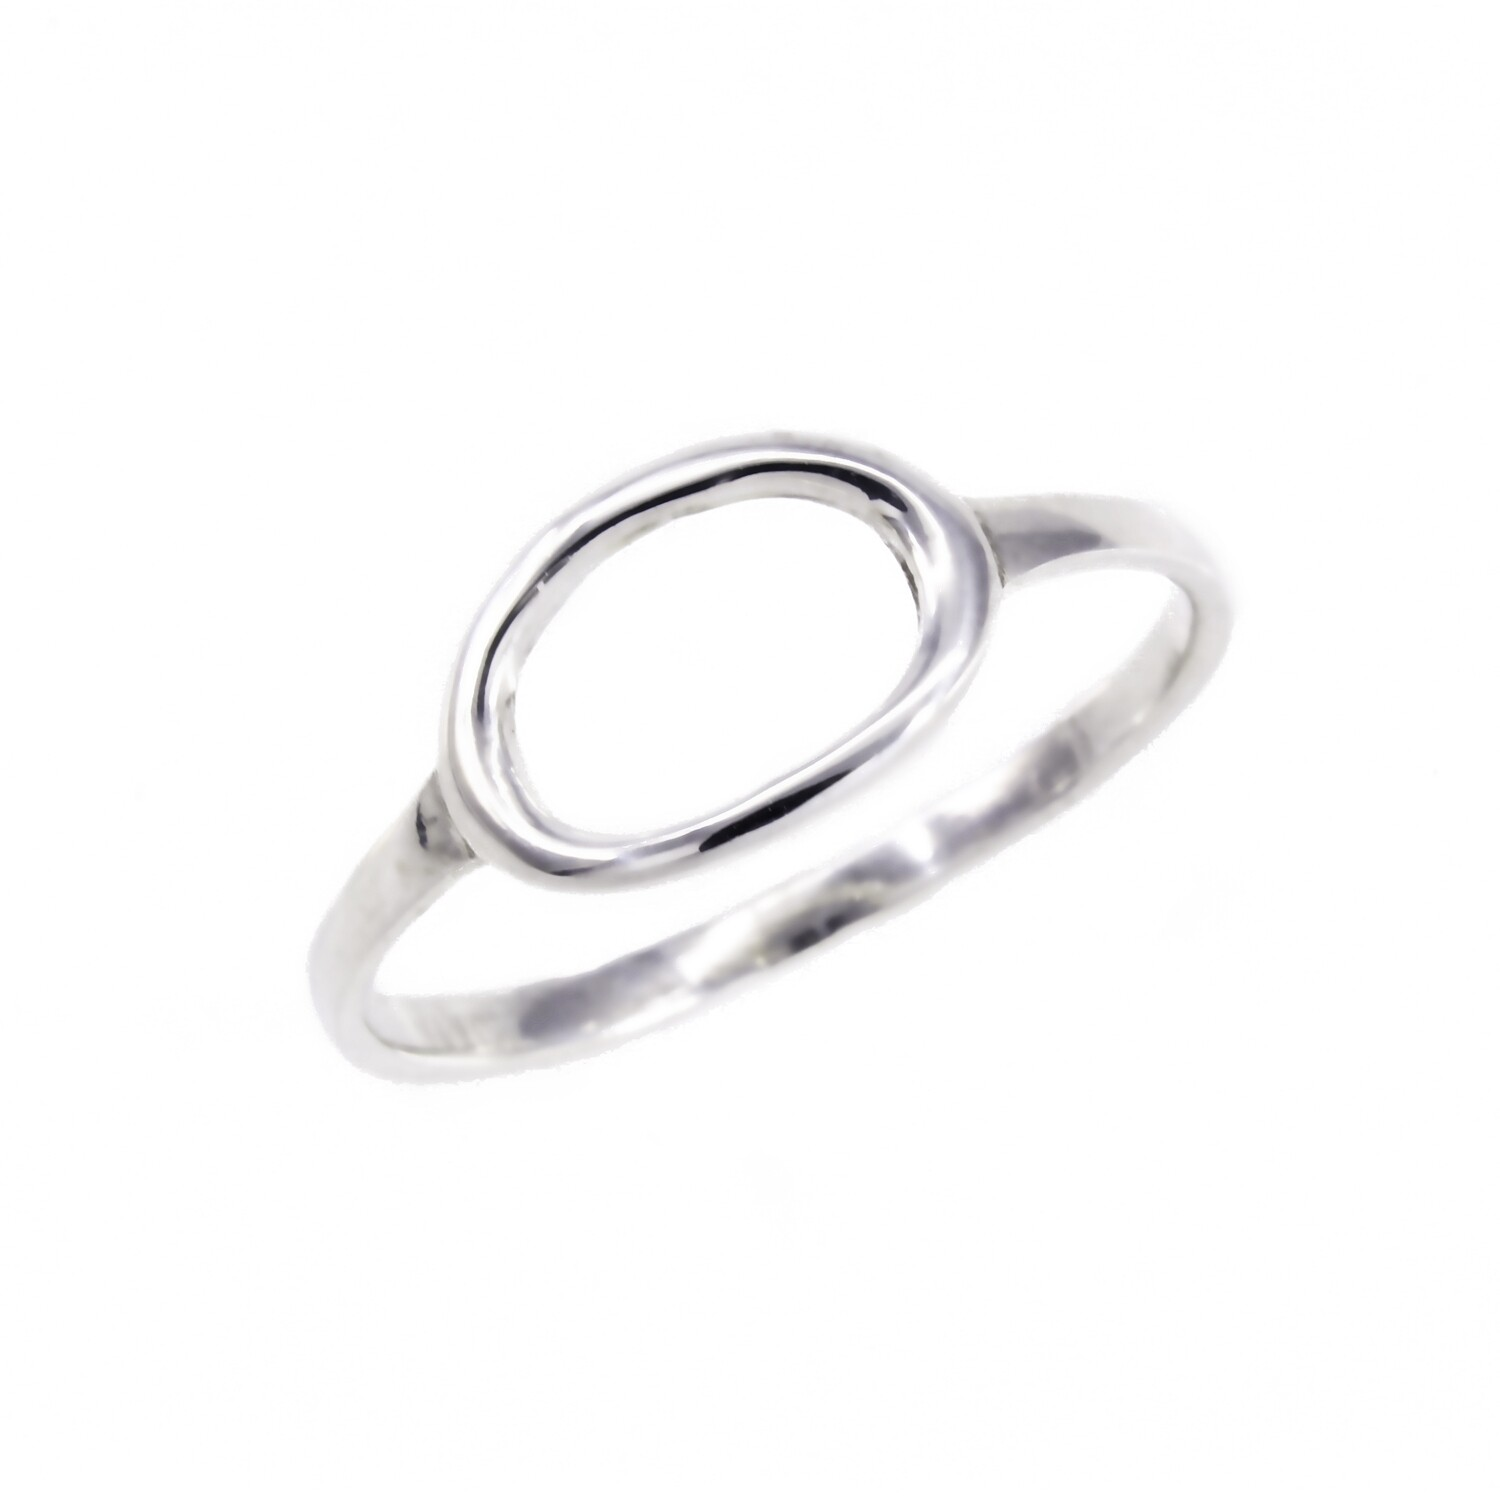 RW2183 Sterling Silver Open Horizontal Oval Ring